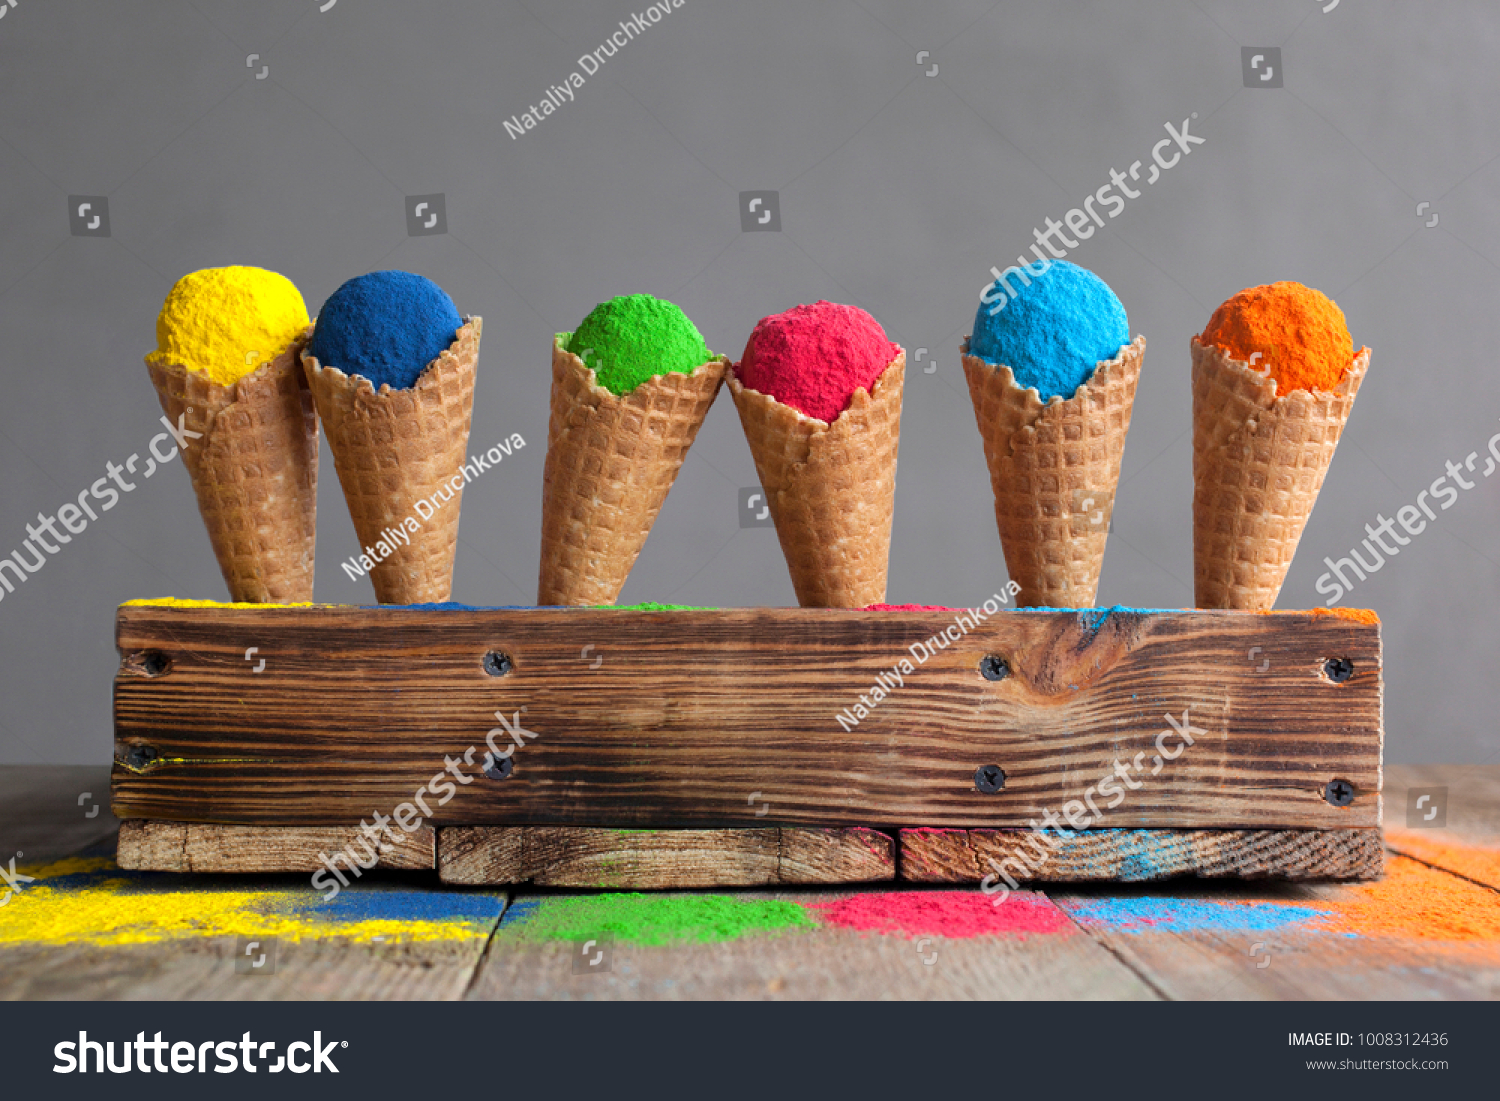 Bright colours in shapes of ice cream scoops in cones for Indian holi festival. Colorful gulal (powder colors) for Happy Holi. #1008312436 - 123PhotoFree.com